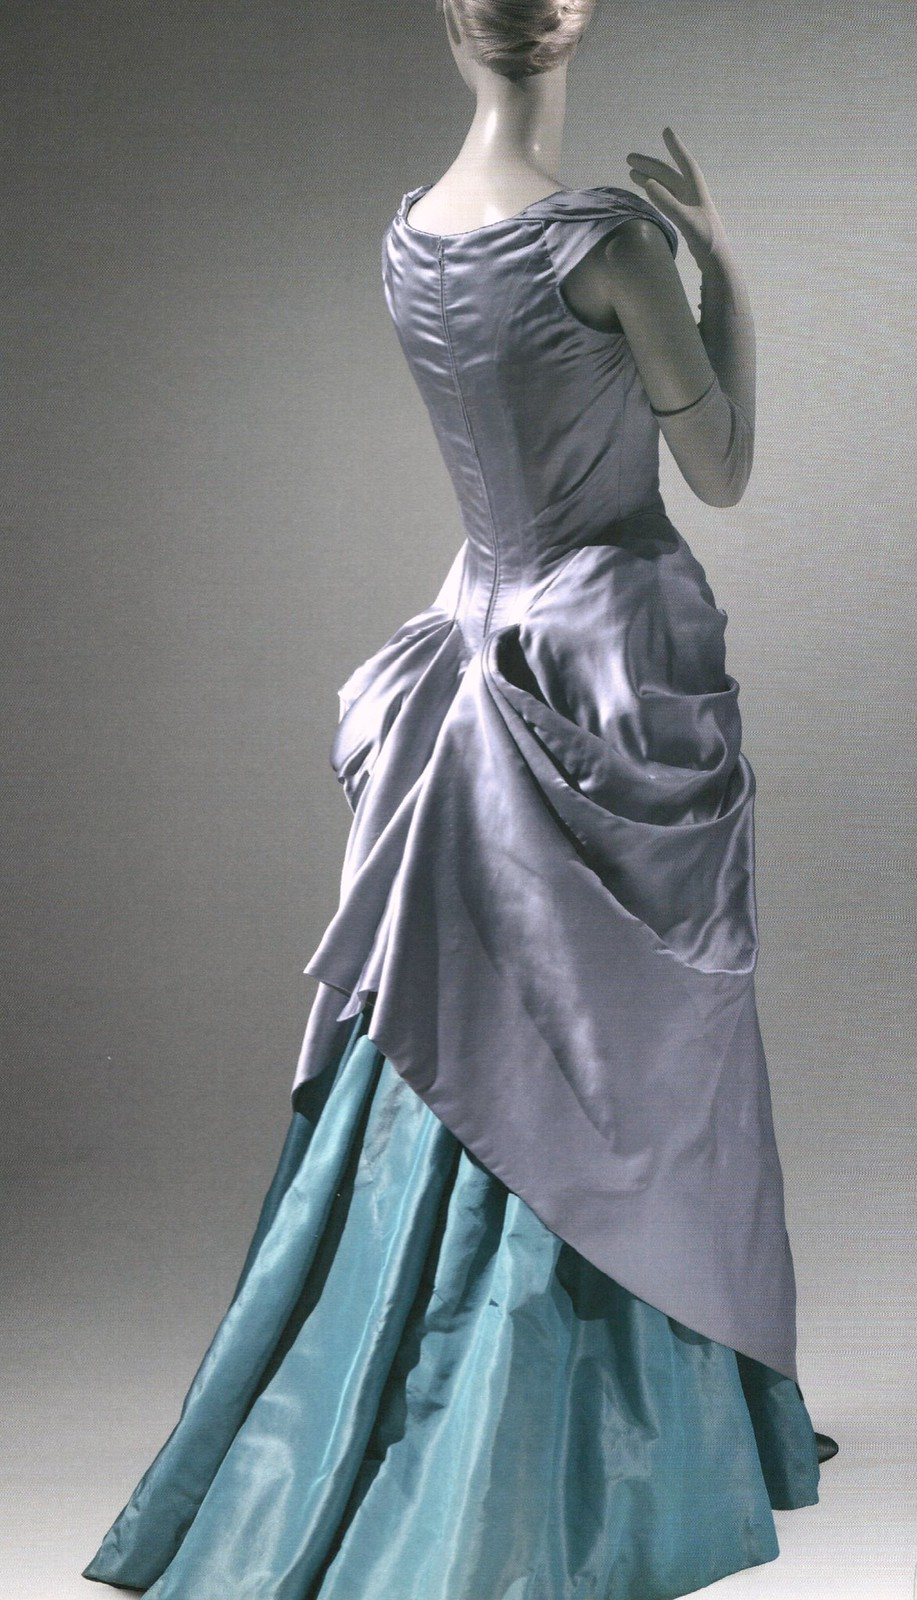 Robe en soie, par Charles James